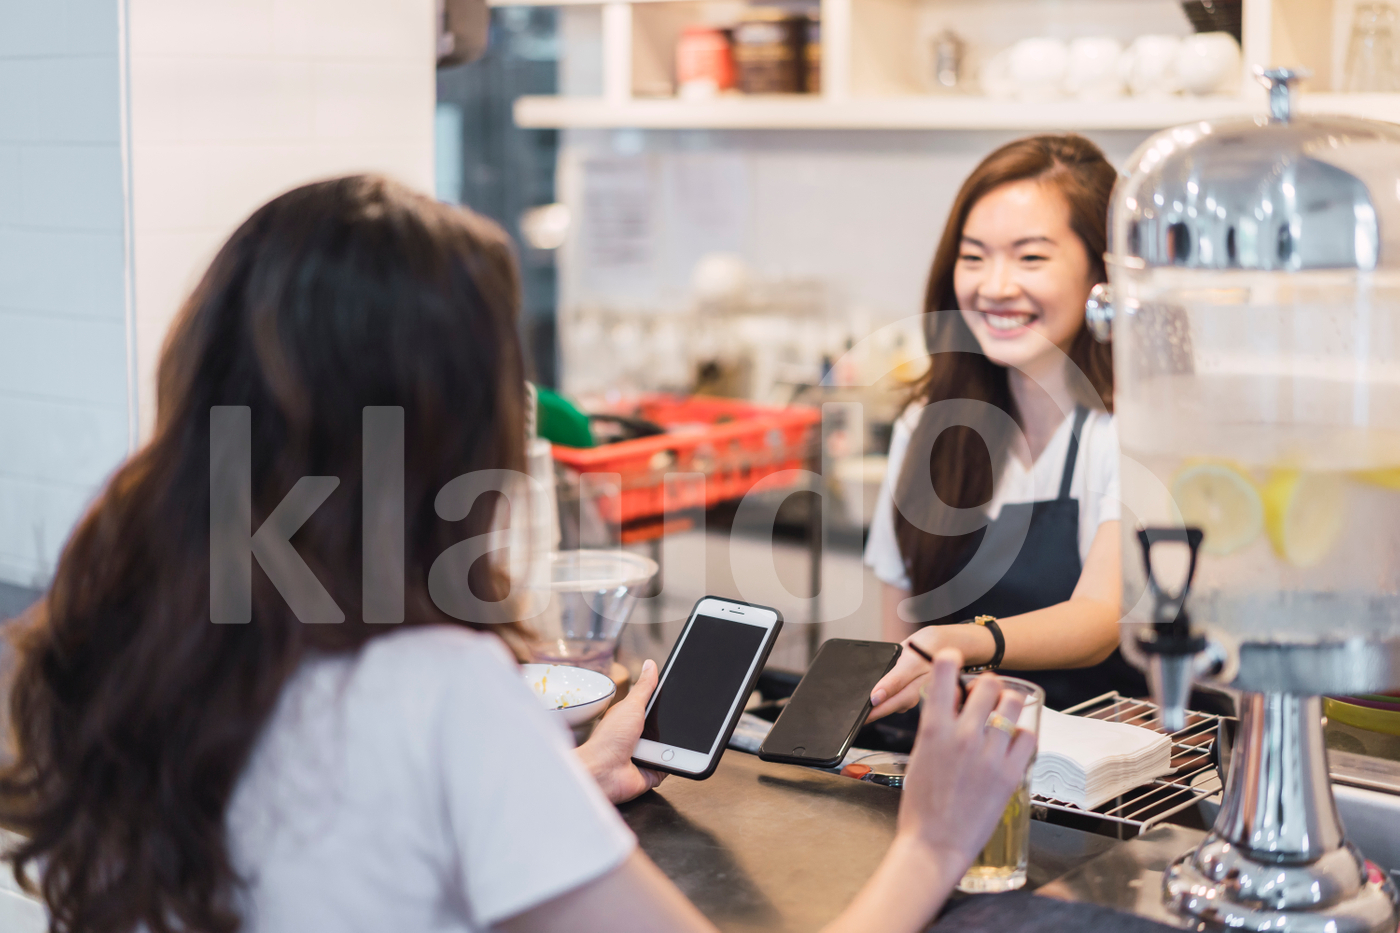 Young Asian woman making payment through smartphone at restaurant